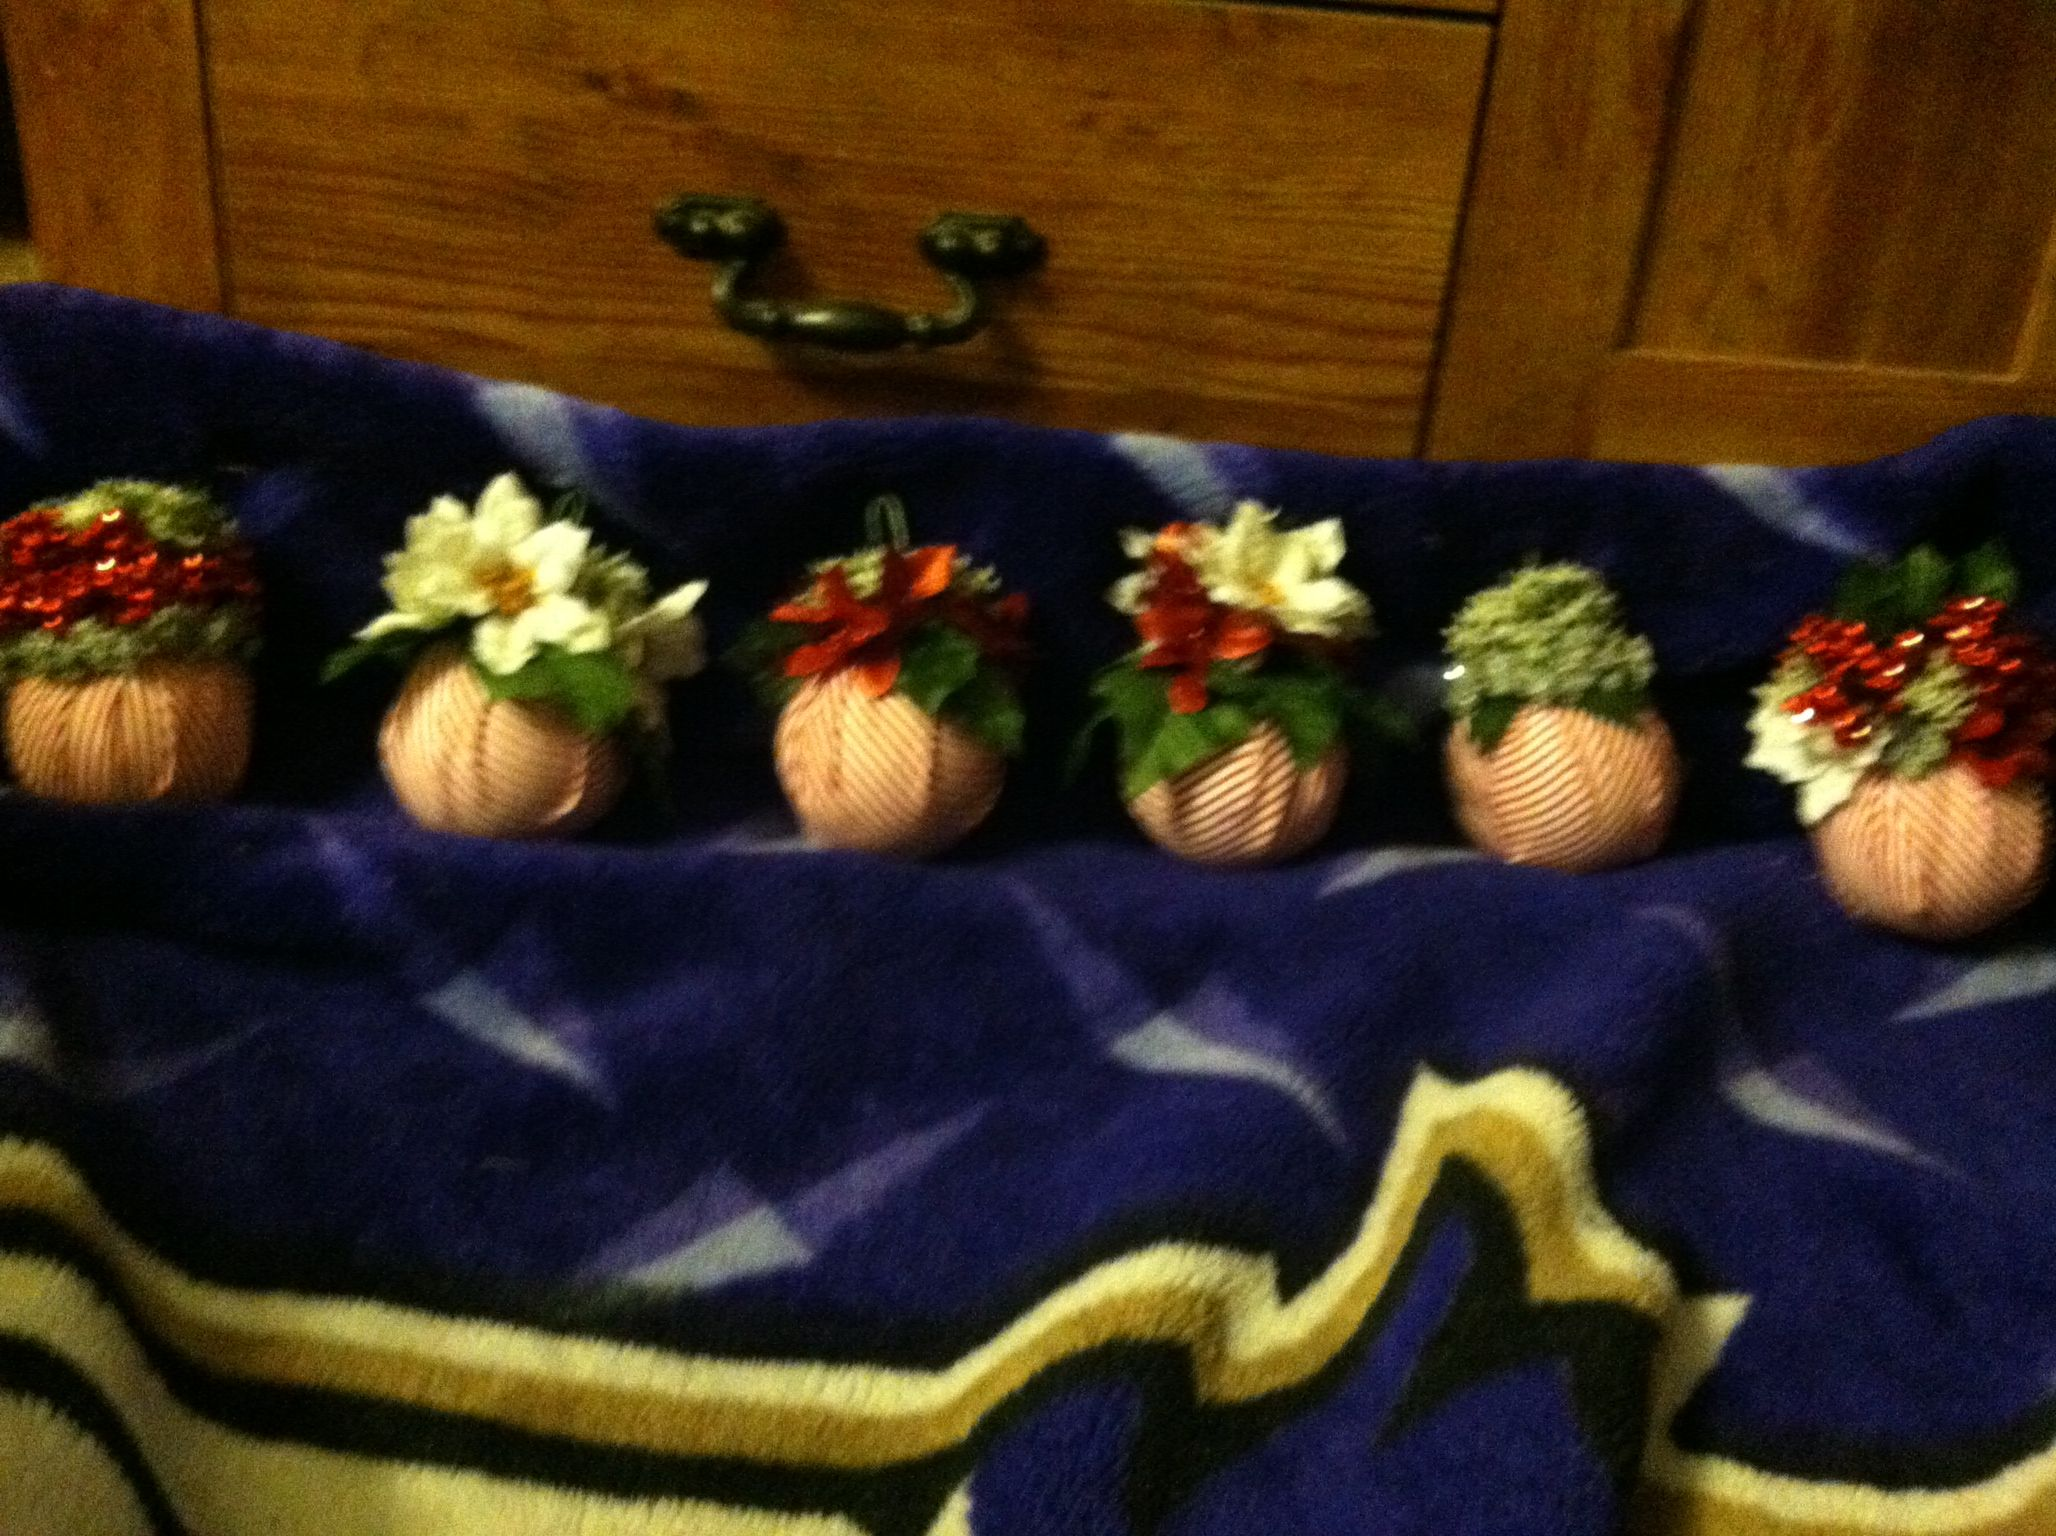 Some ornaments made for tree